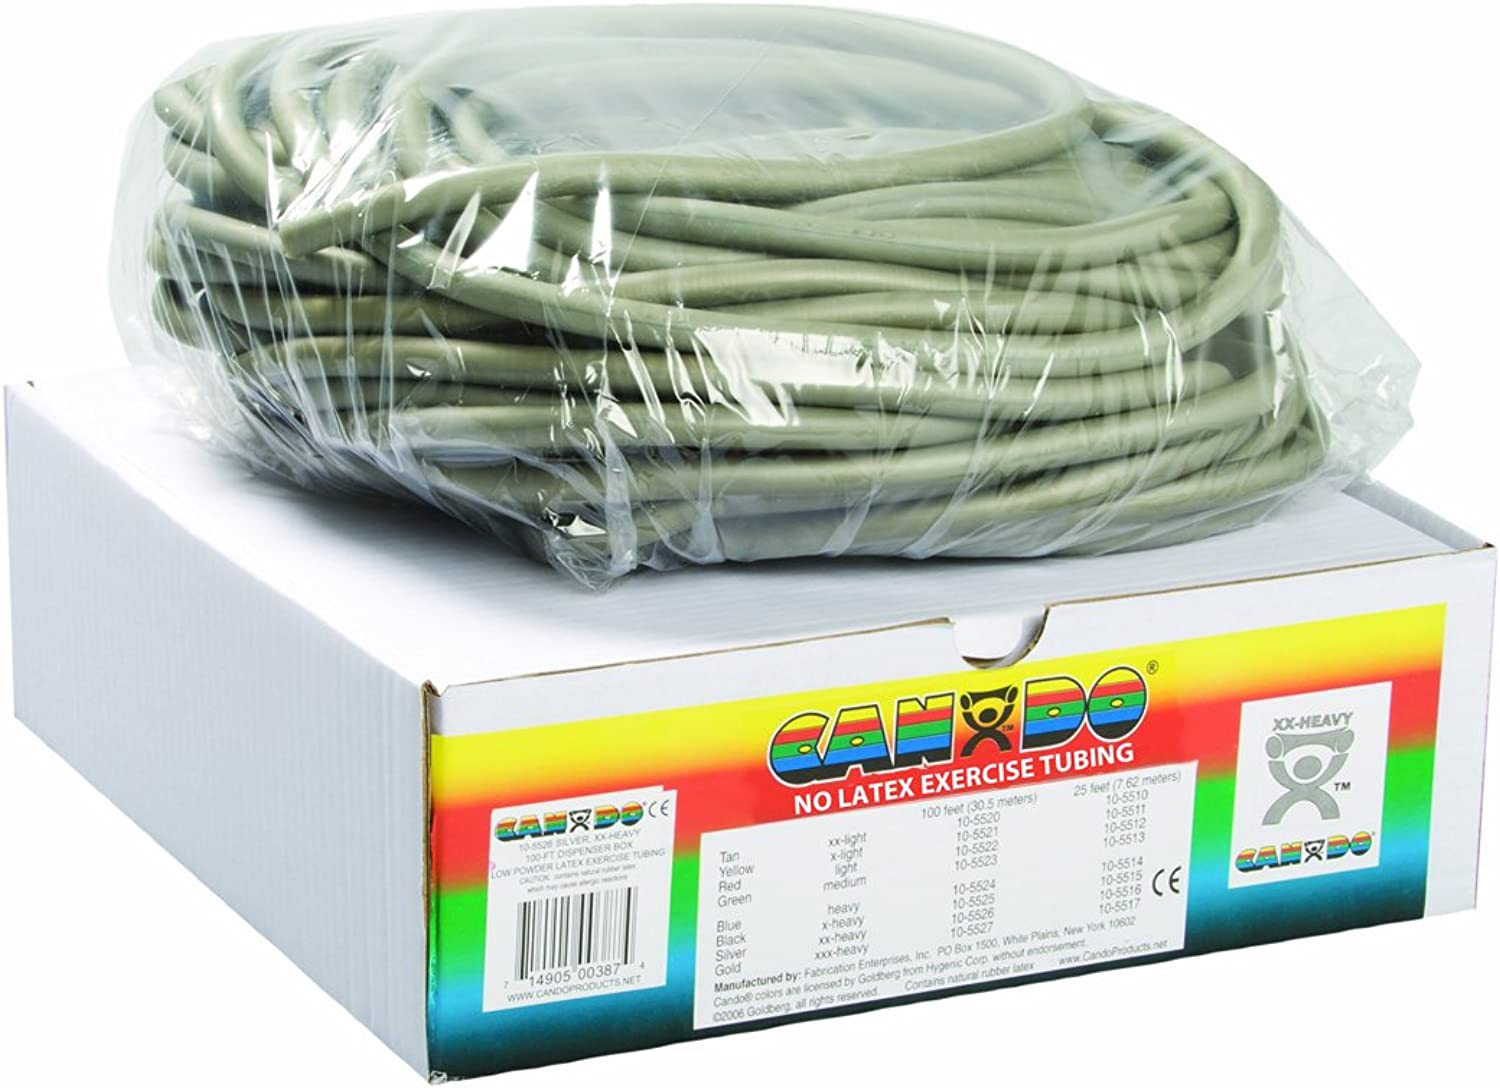 (silver) - Cando 10-5726 No Latex Exercise Tubing - 100ft - Silver - XX-Heavy